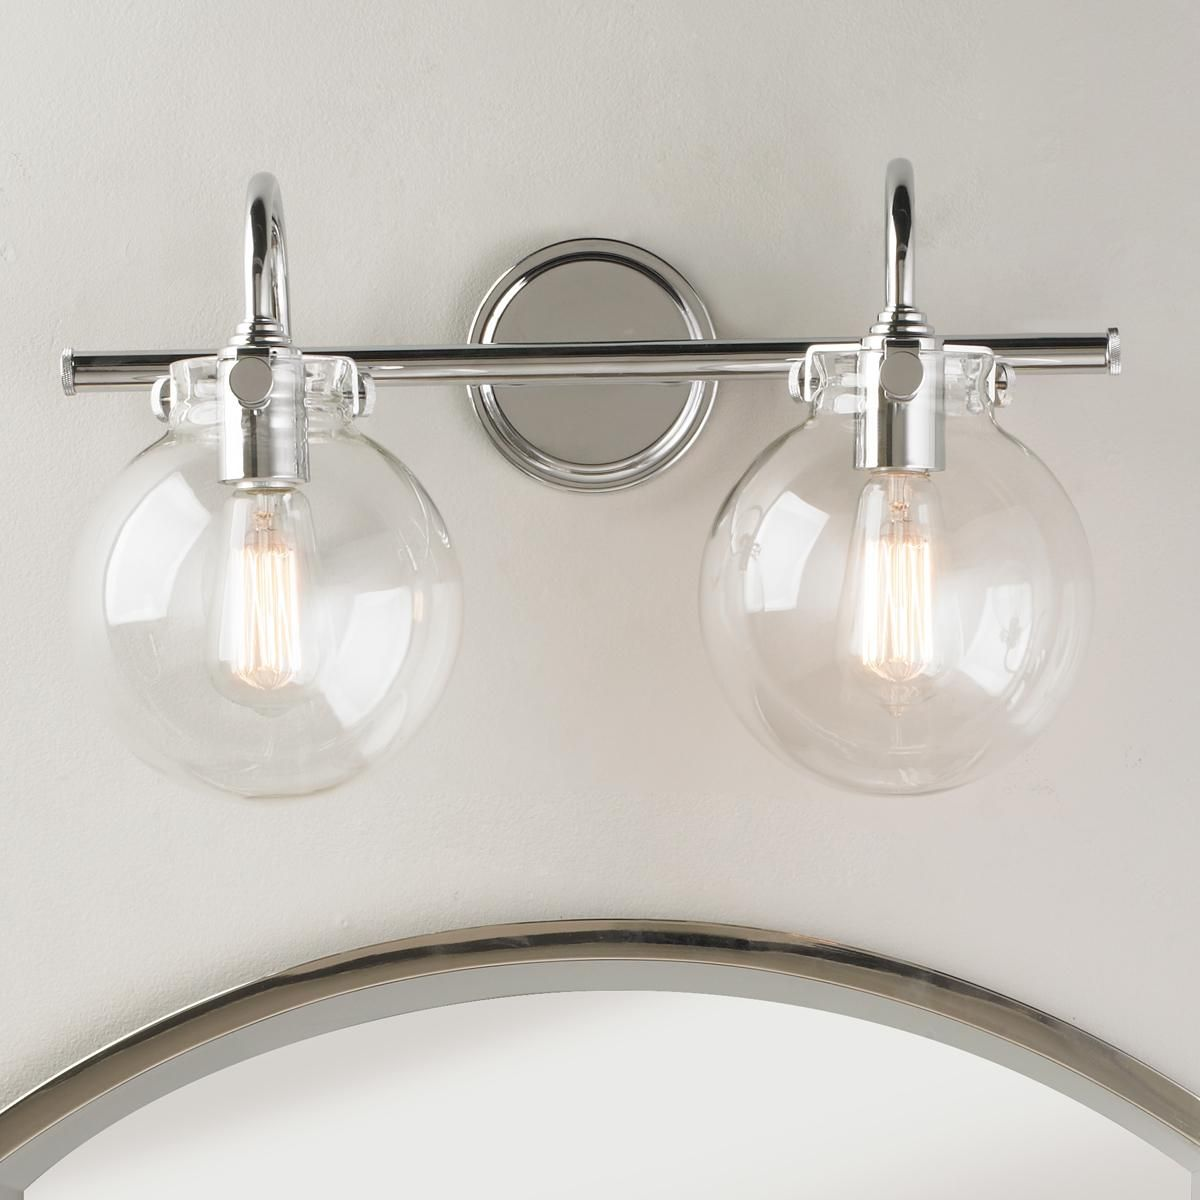 Retro Glass Globe Bath Light 2 Light Light Fixtures Bathroom